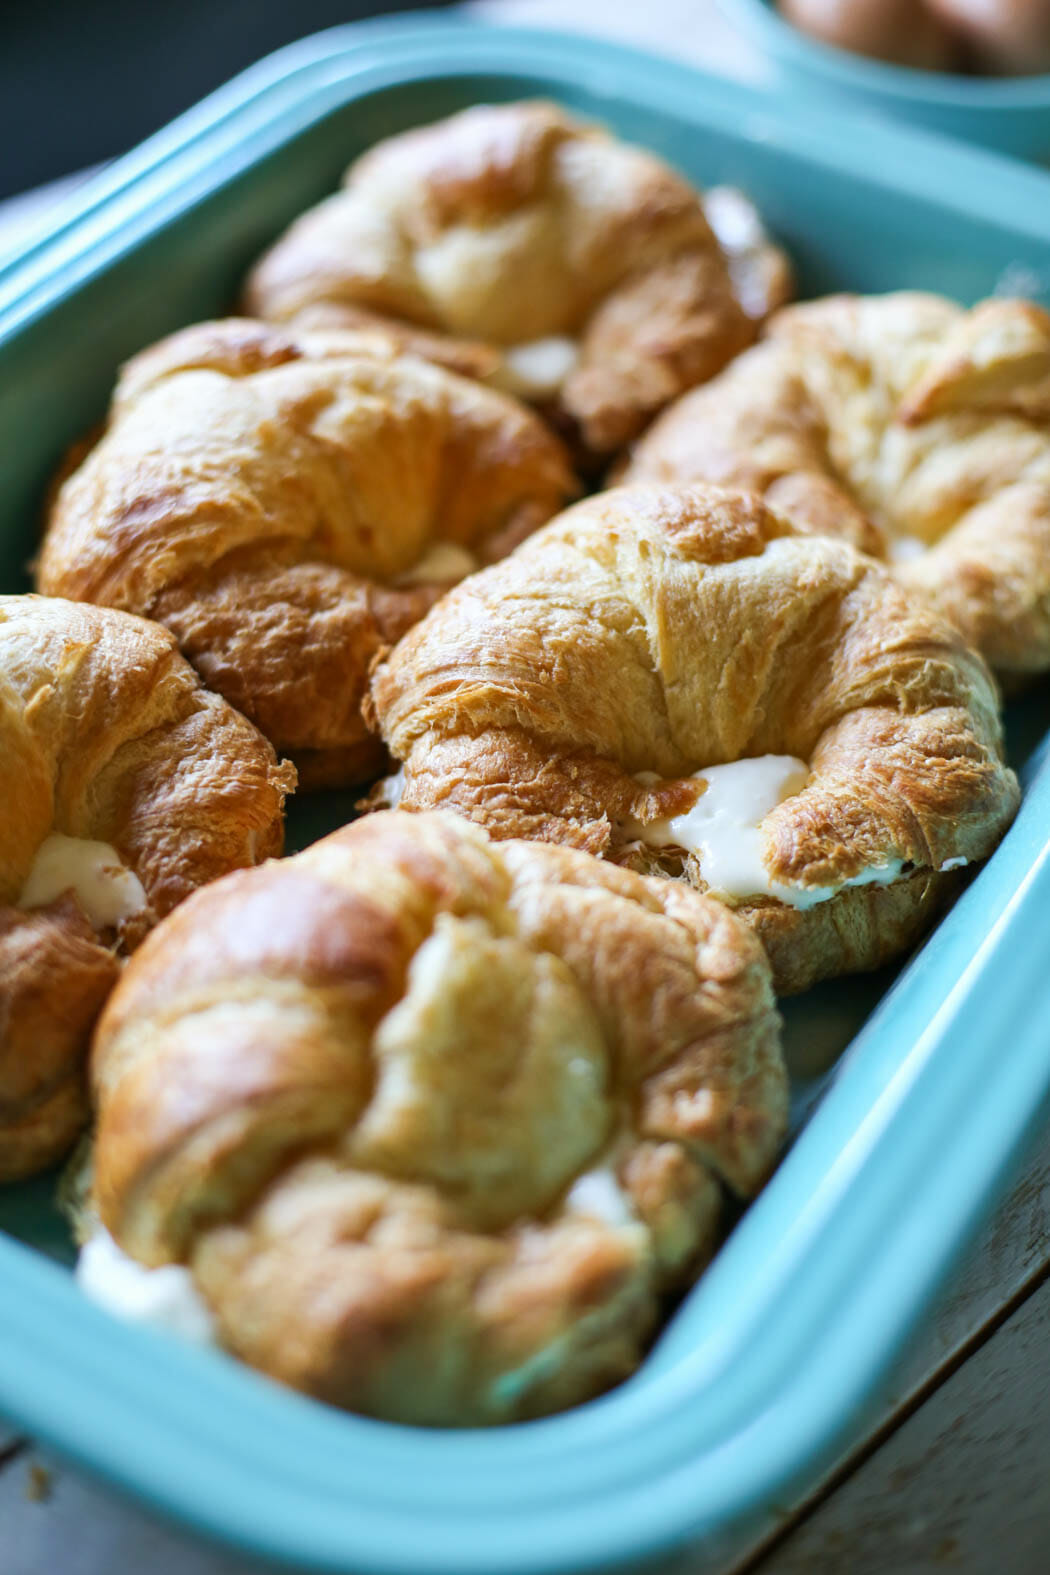 cream cheese stuffed croissants in baking dish